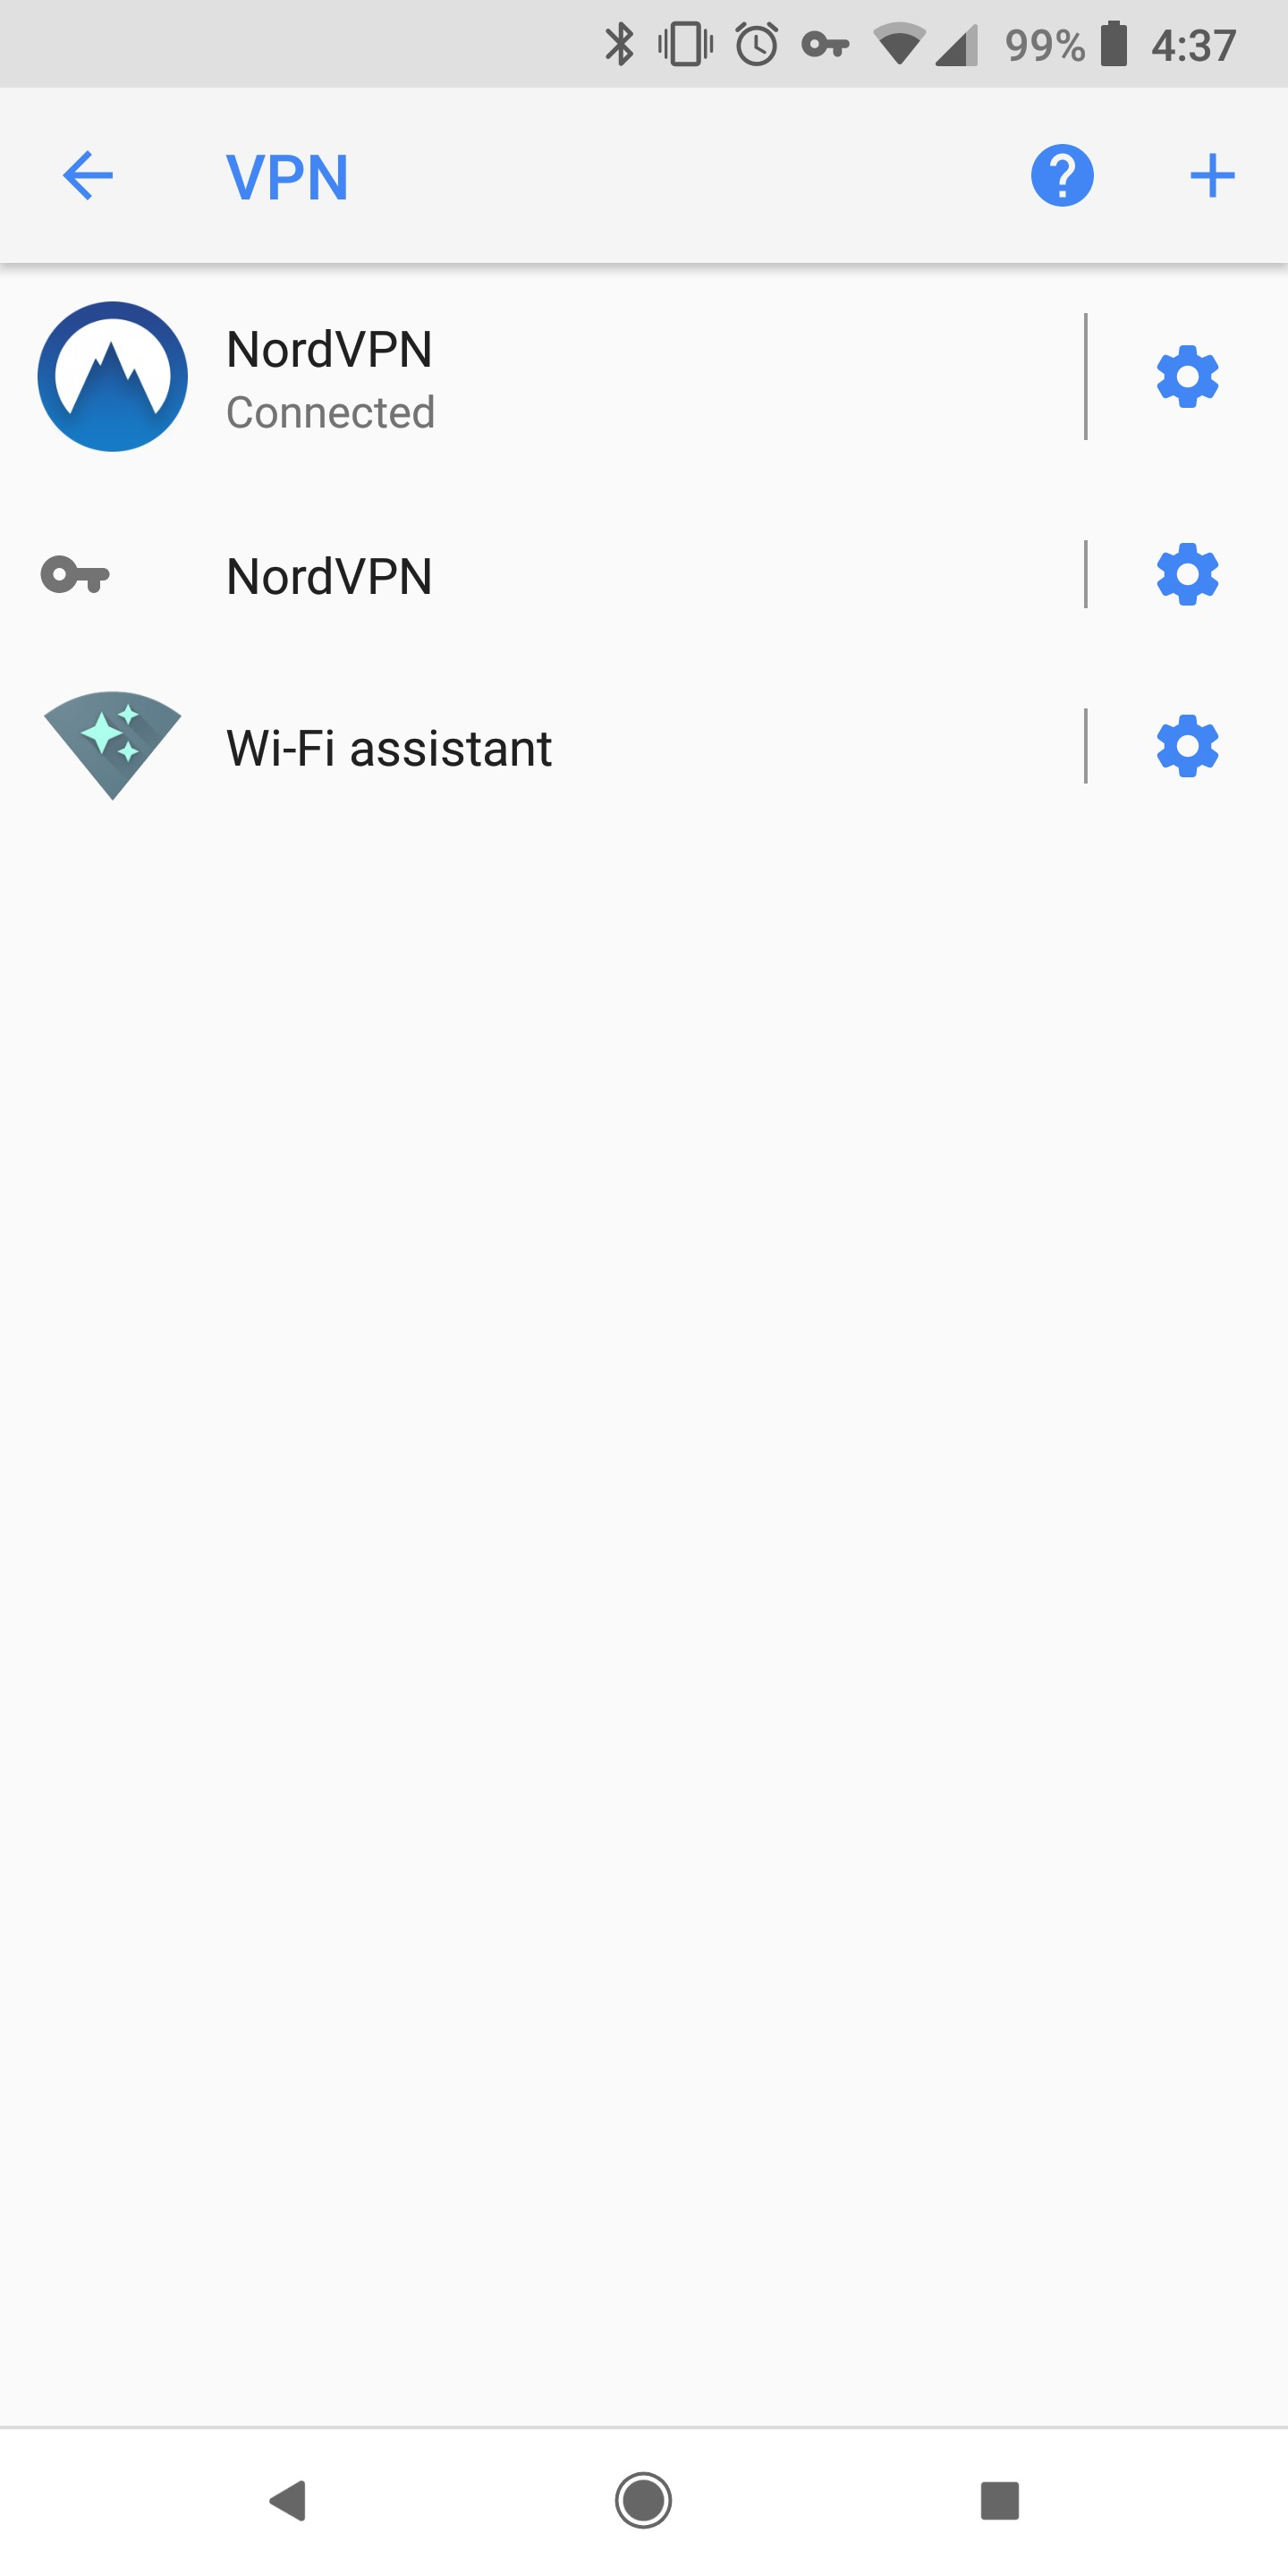 How to set up a VPN on Android - 9to5Google